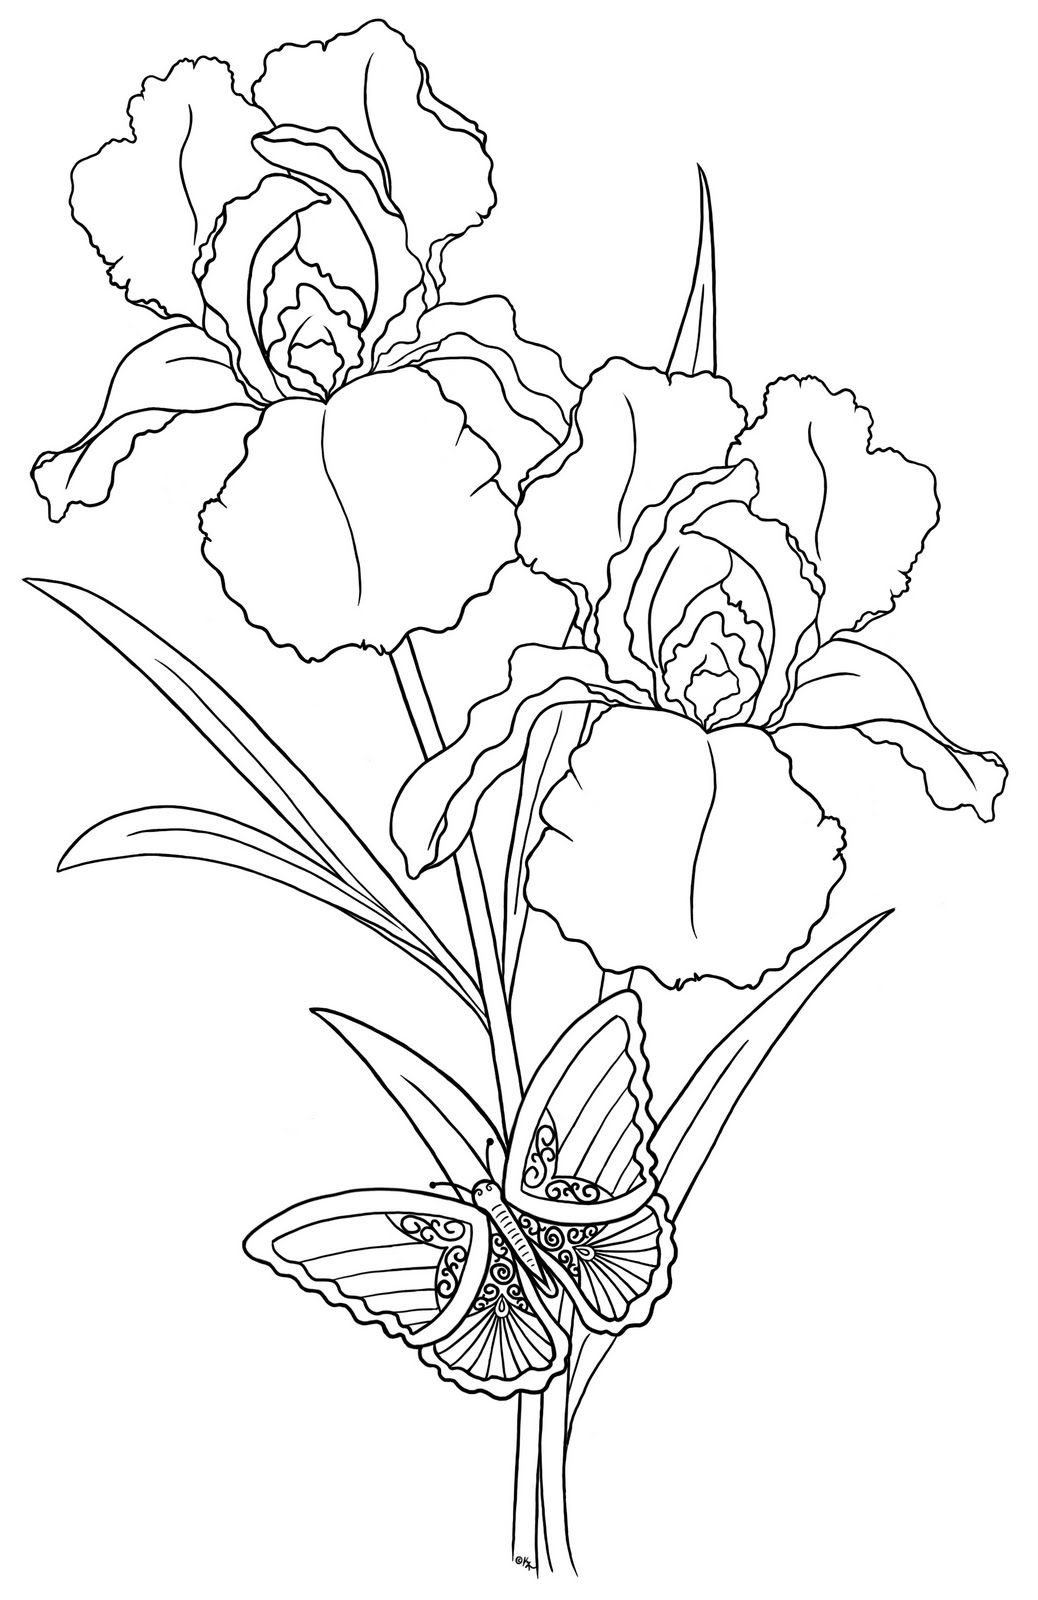 Iris 27s N 27butterfly Bearywishes Blogspot Com Jpg 1 038 1 600 Pixels Iris Drawing Flower Drawing Flower Coloring Pages